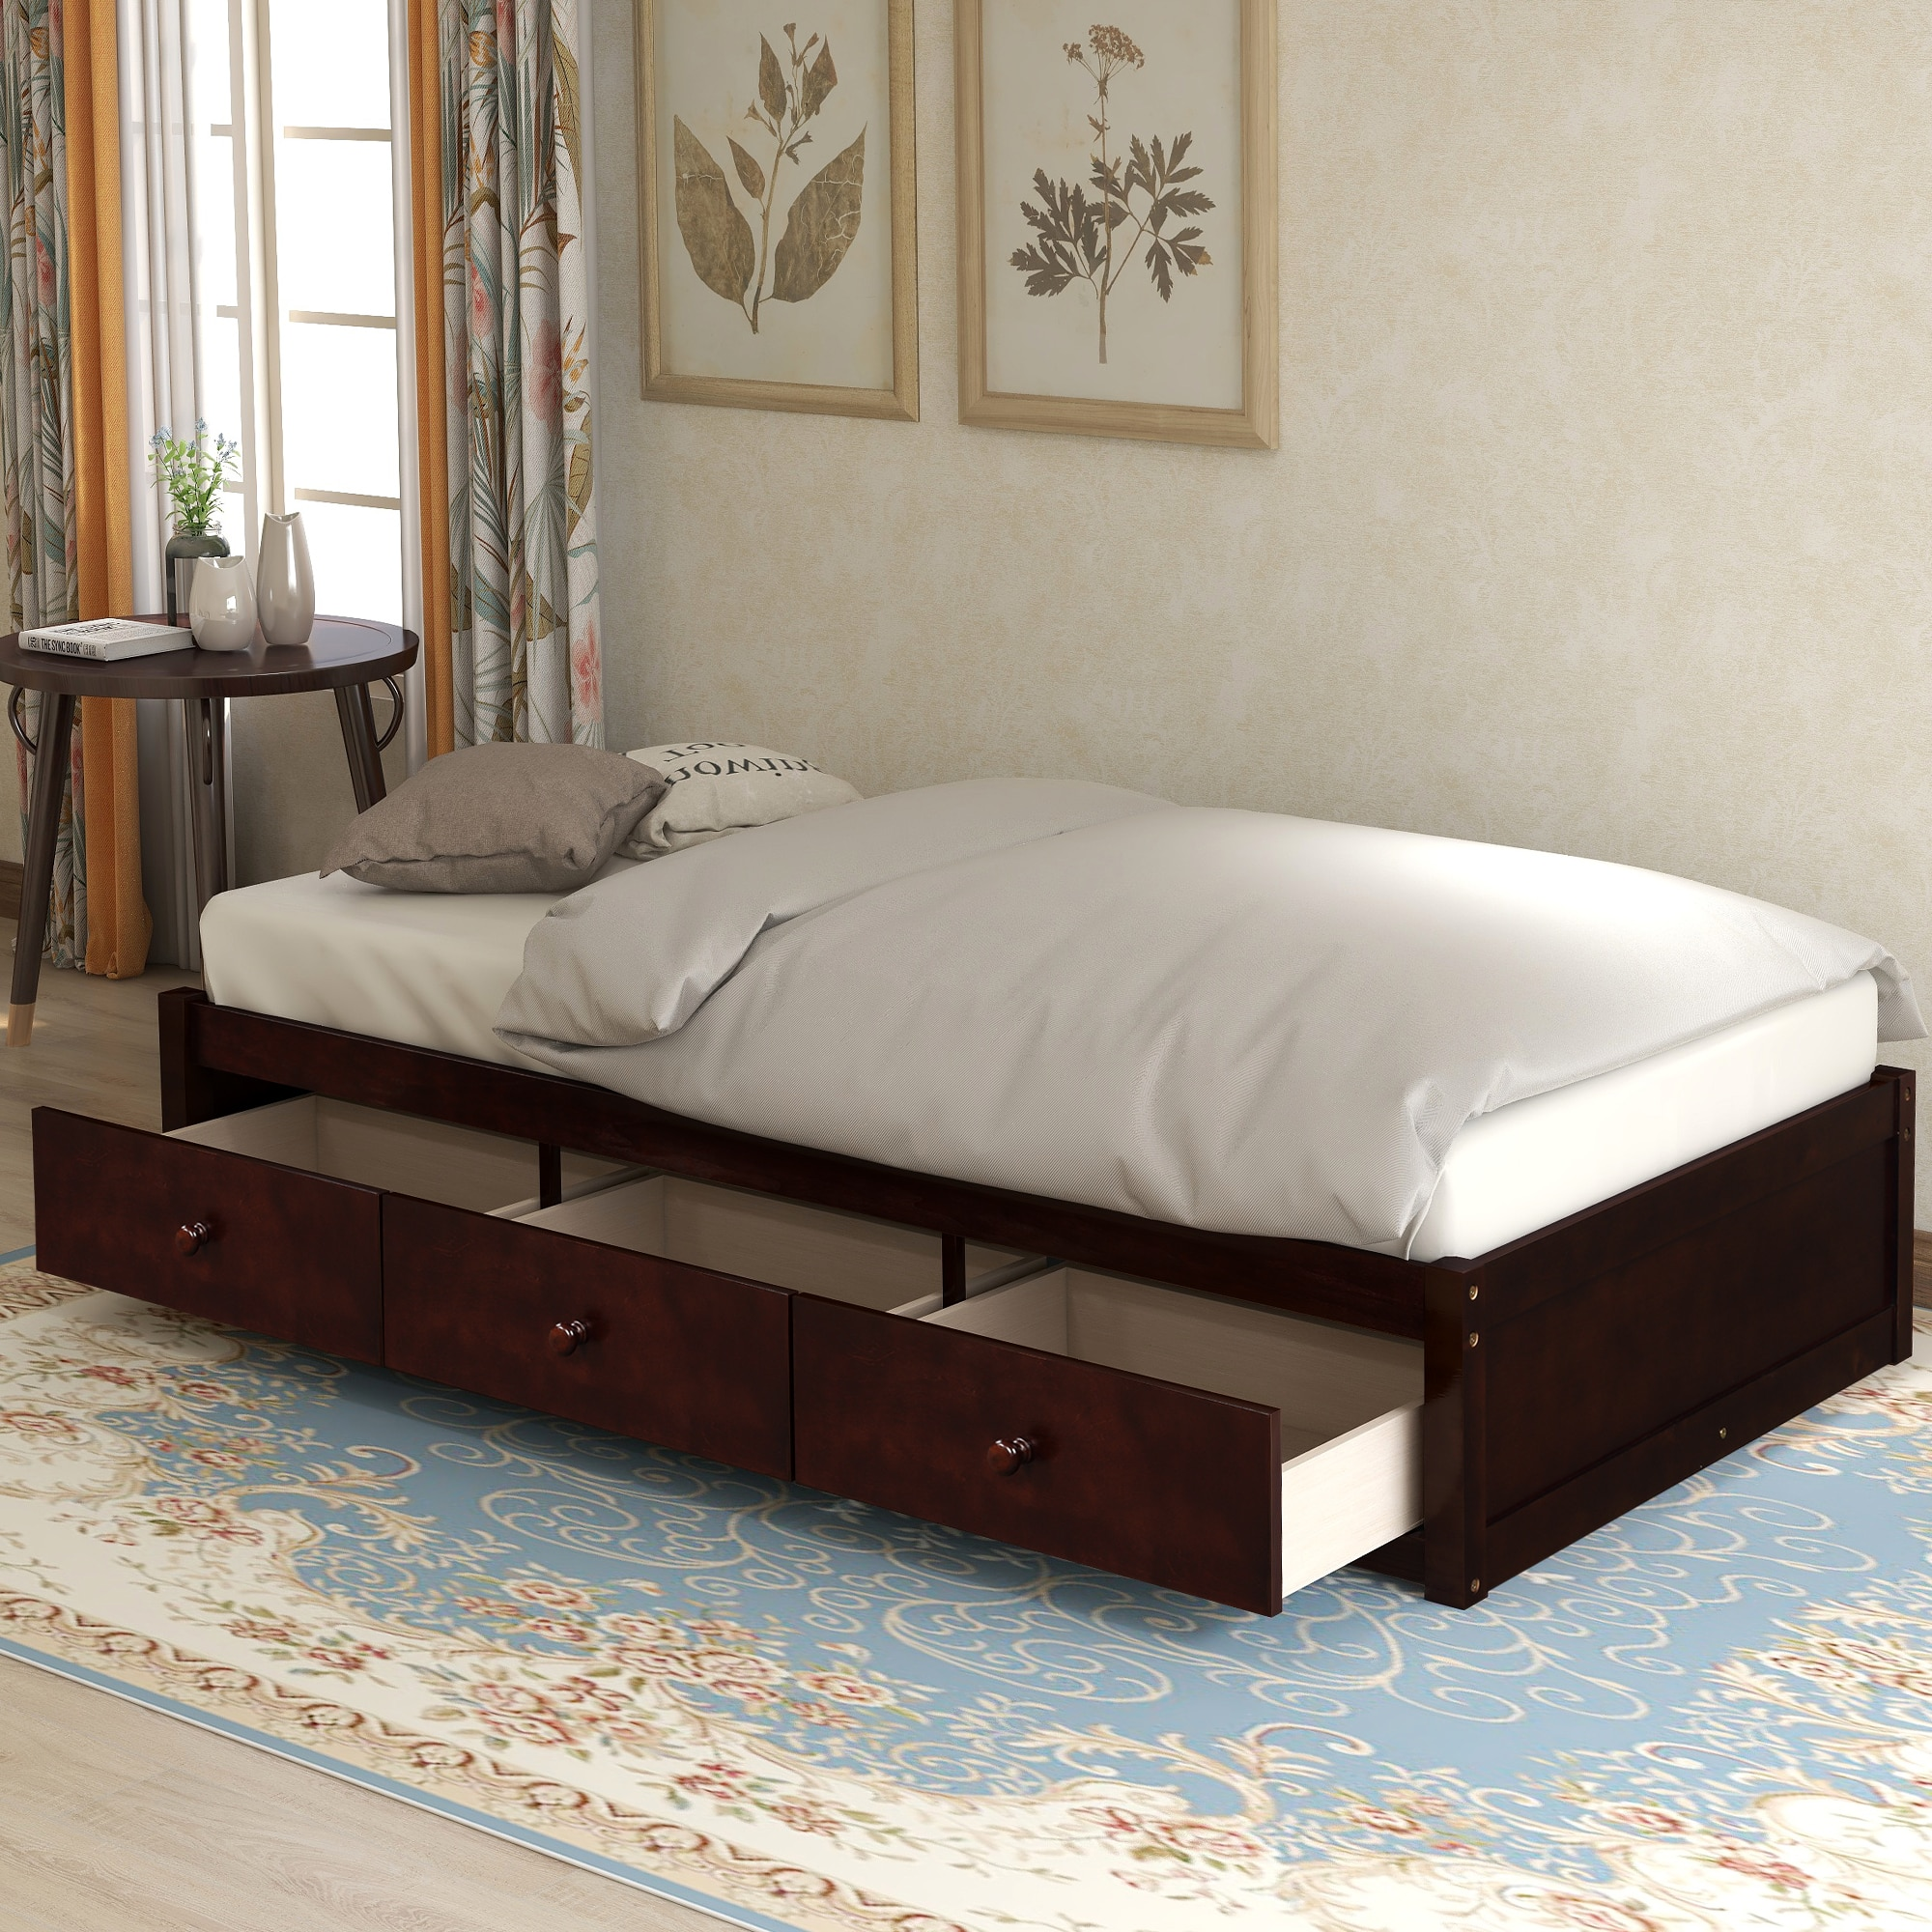 Picture of: Twin Size Platform Storage Bed 3 Drawers More Storage Space For Bedroom Apartment Solid Wood Sturdy Mdf And Composite Wood Beds